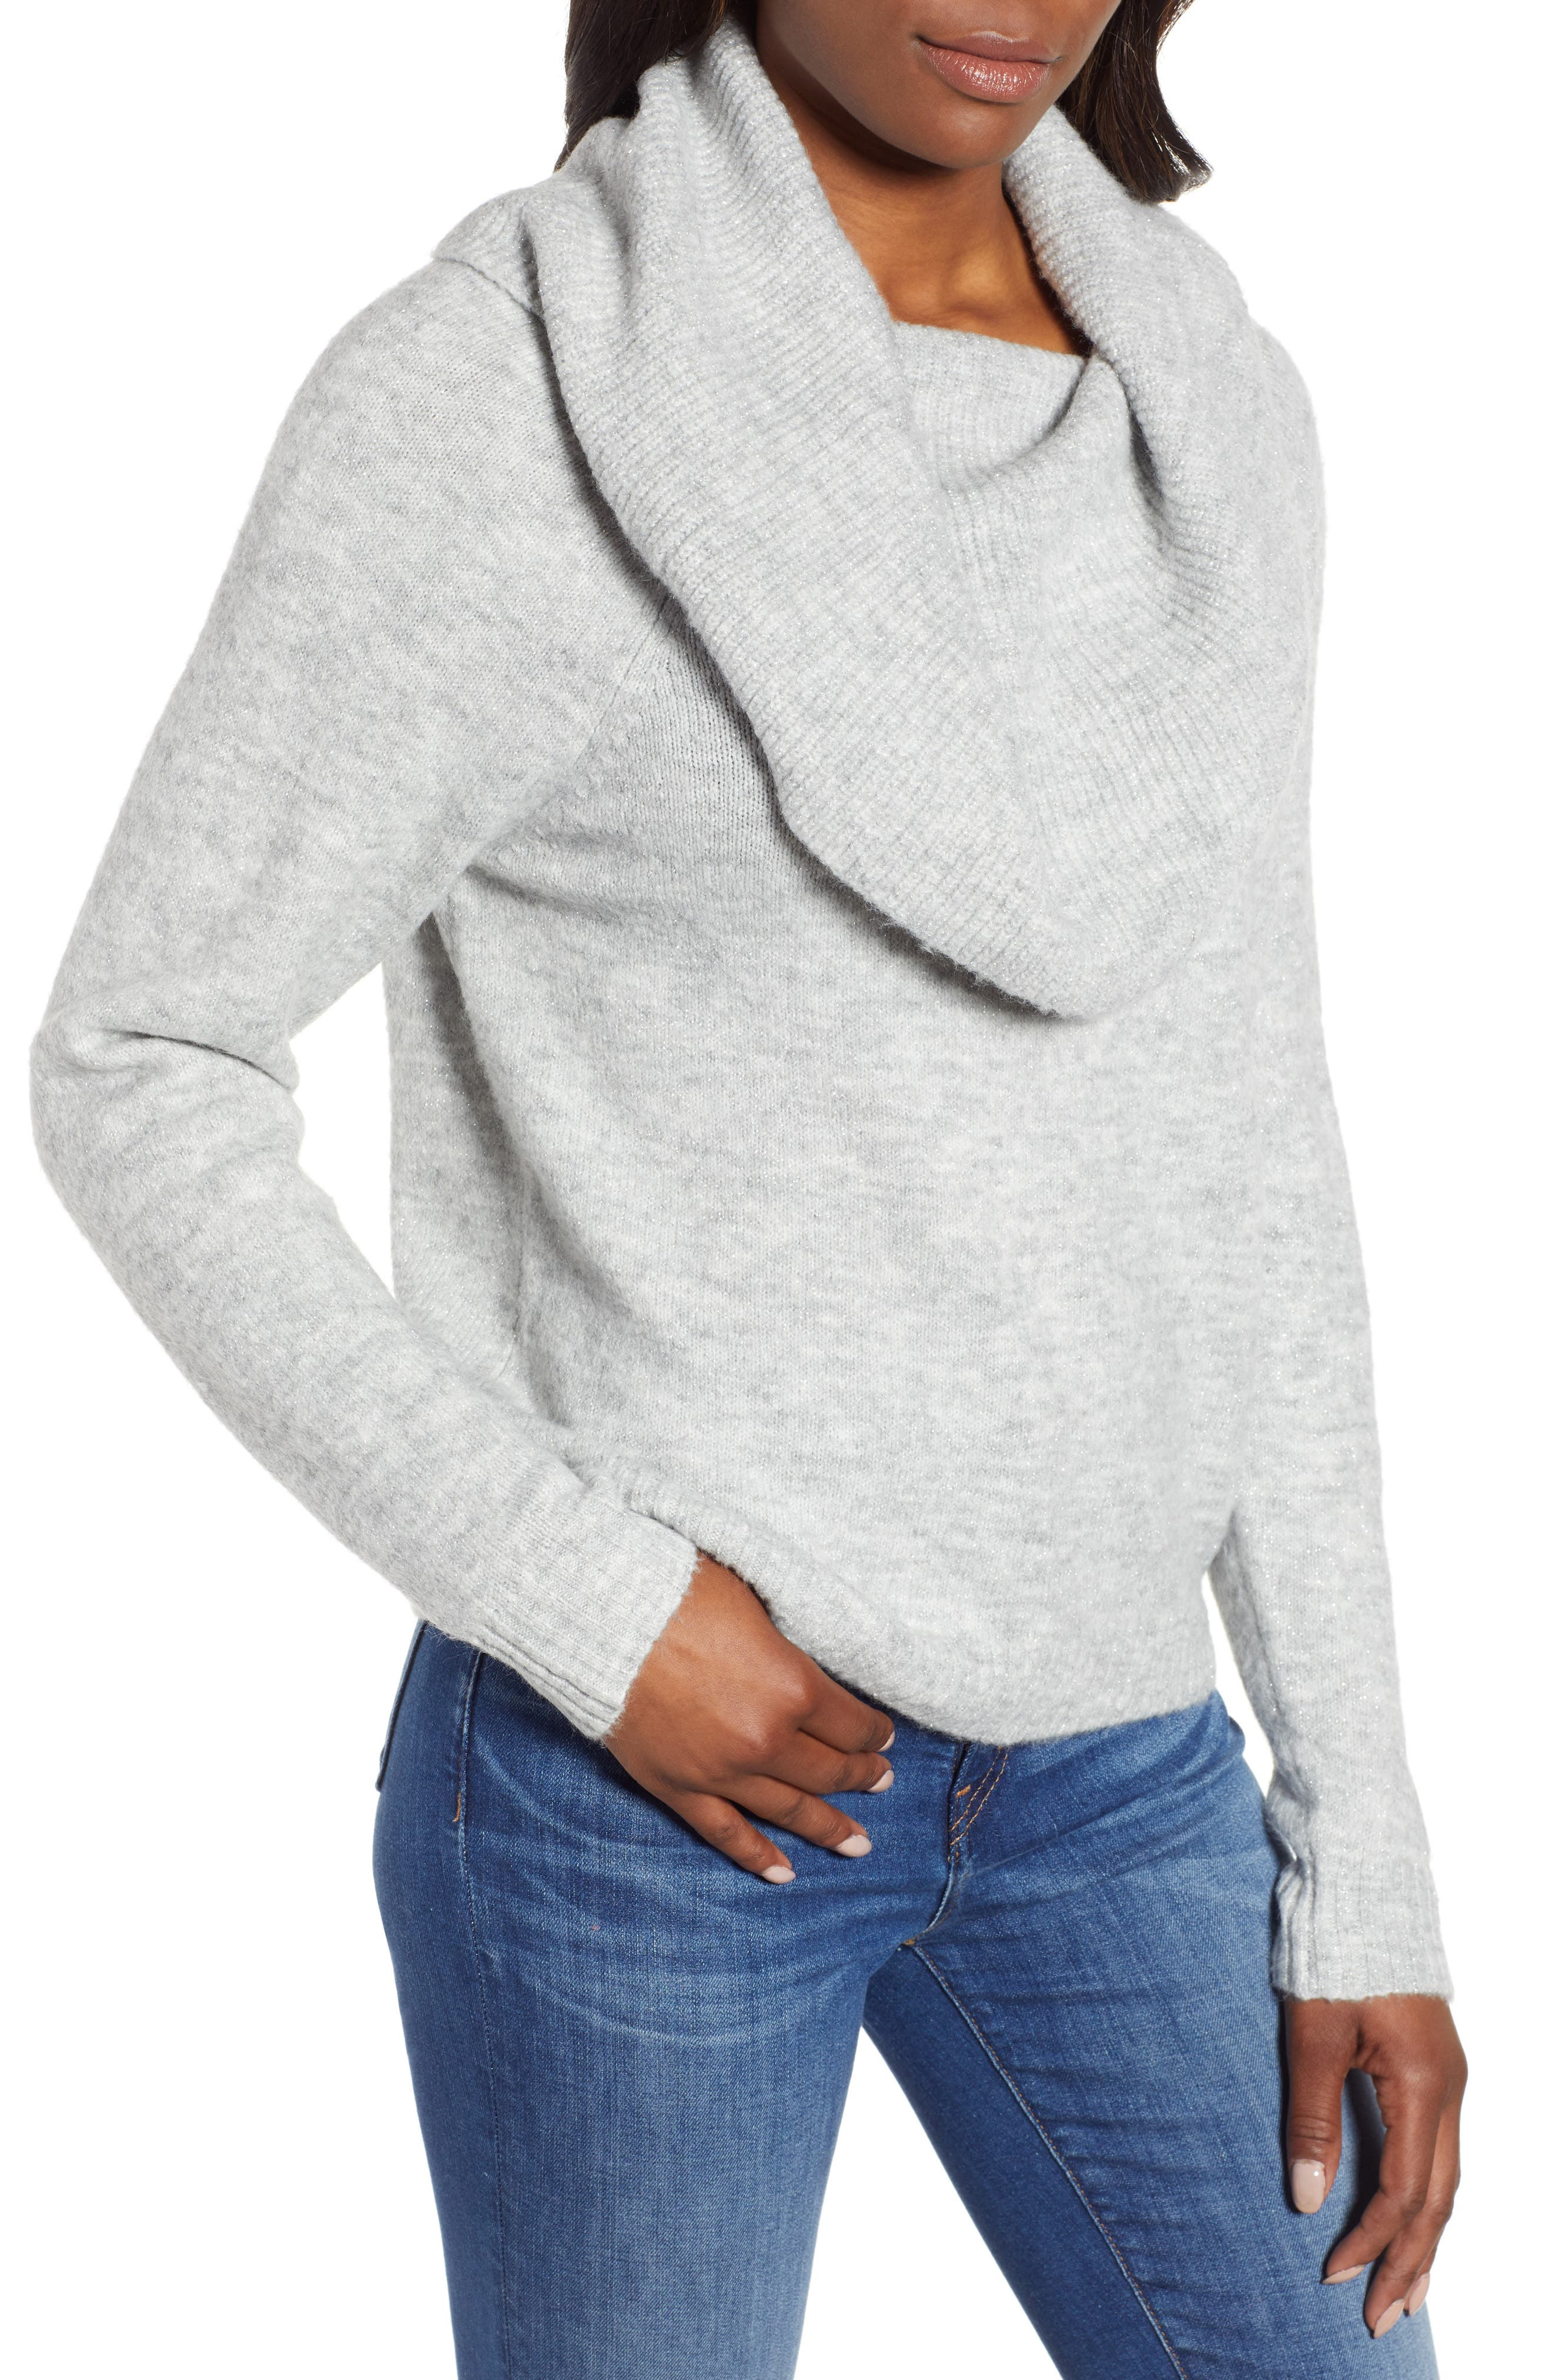 Convertible Cowl Neck Sweater,                             Alternate thumbnail 2, color,                             GREY HEATHER